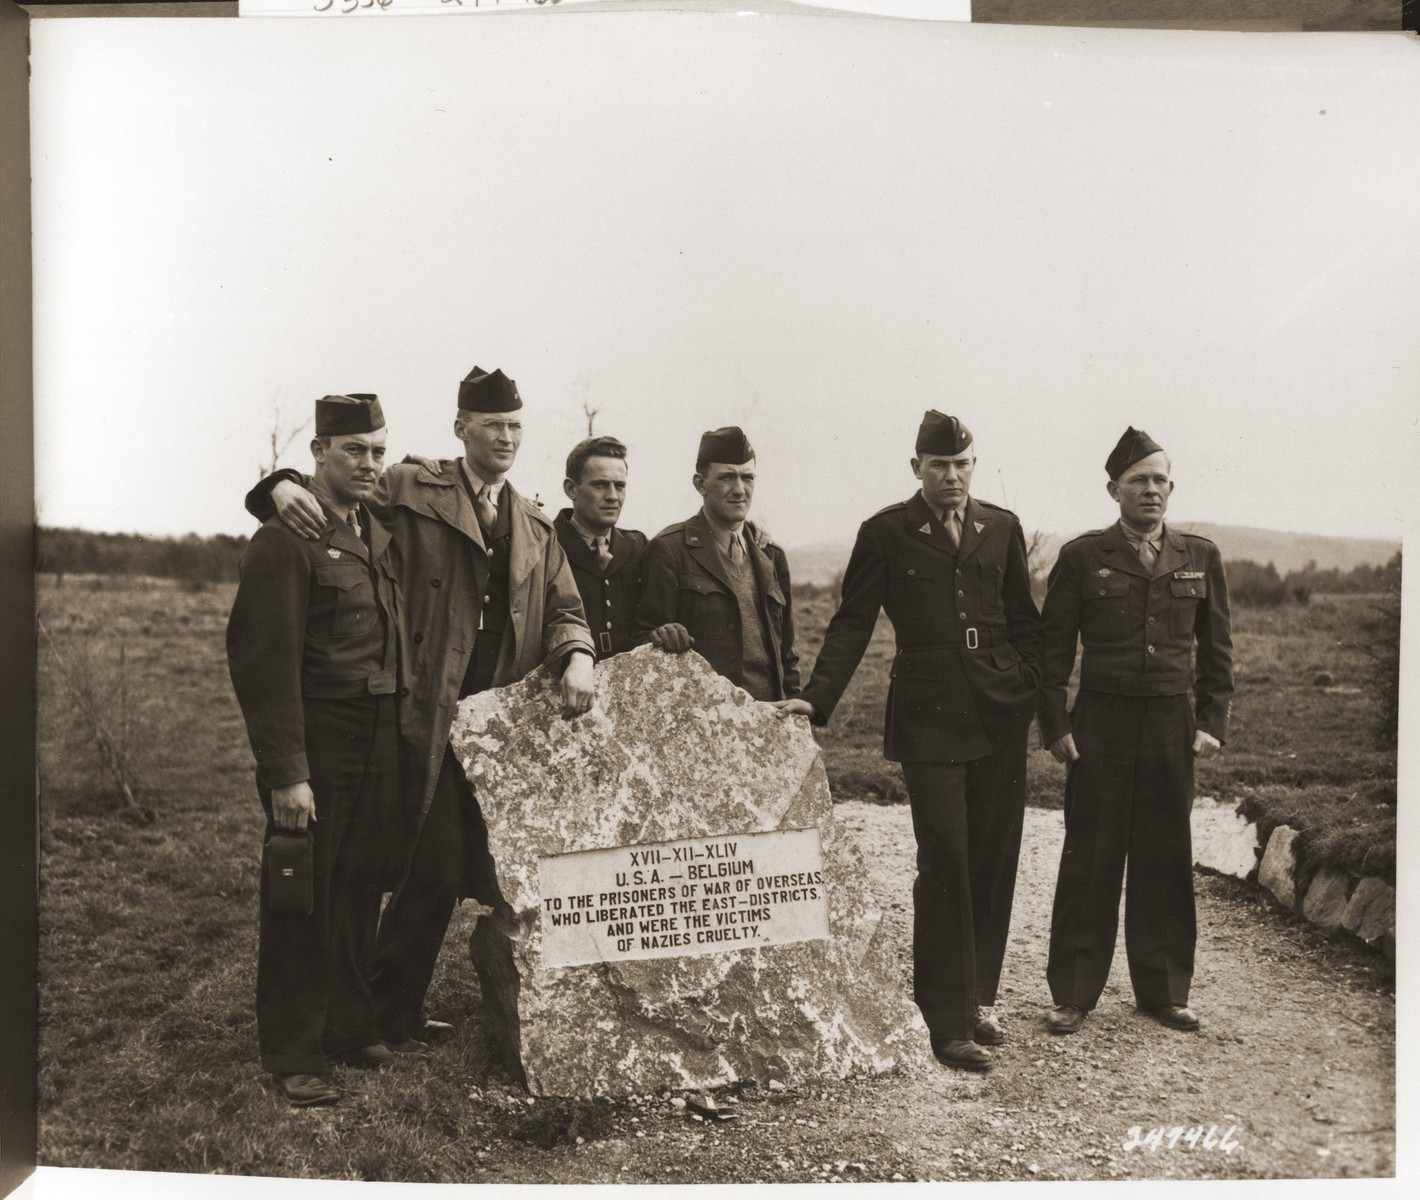 Six survivors of the Malmedy atrocity return to the field where SS troops of the First SS Panzer Division shot and killed 86 unarmed American soldiers on December 17, 1944.    These six survivors were flown to the site to testify.  The six survivors are Samuel Dobyns, Sandusky, Ohio; Kenneth F. Ahrens, Erie, Pa.; Omar D. Ford, Leeton, Mo.; Kenneth E. Kingston, Allentown, Pa.; Carl R. Daub, Colebrook, Pa.; and Virgil P. Larry, Lexington, Kentucky.